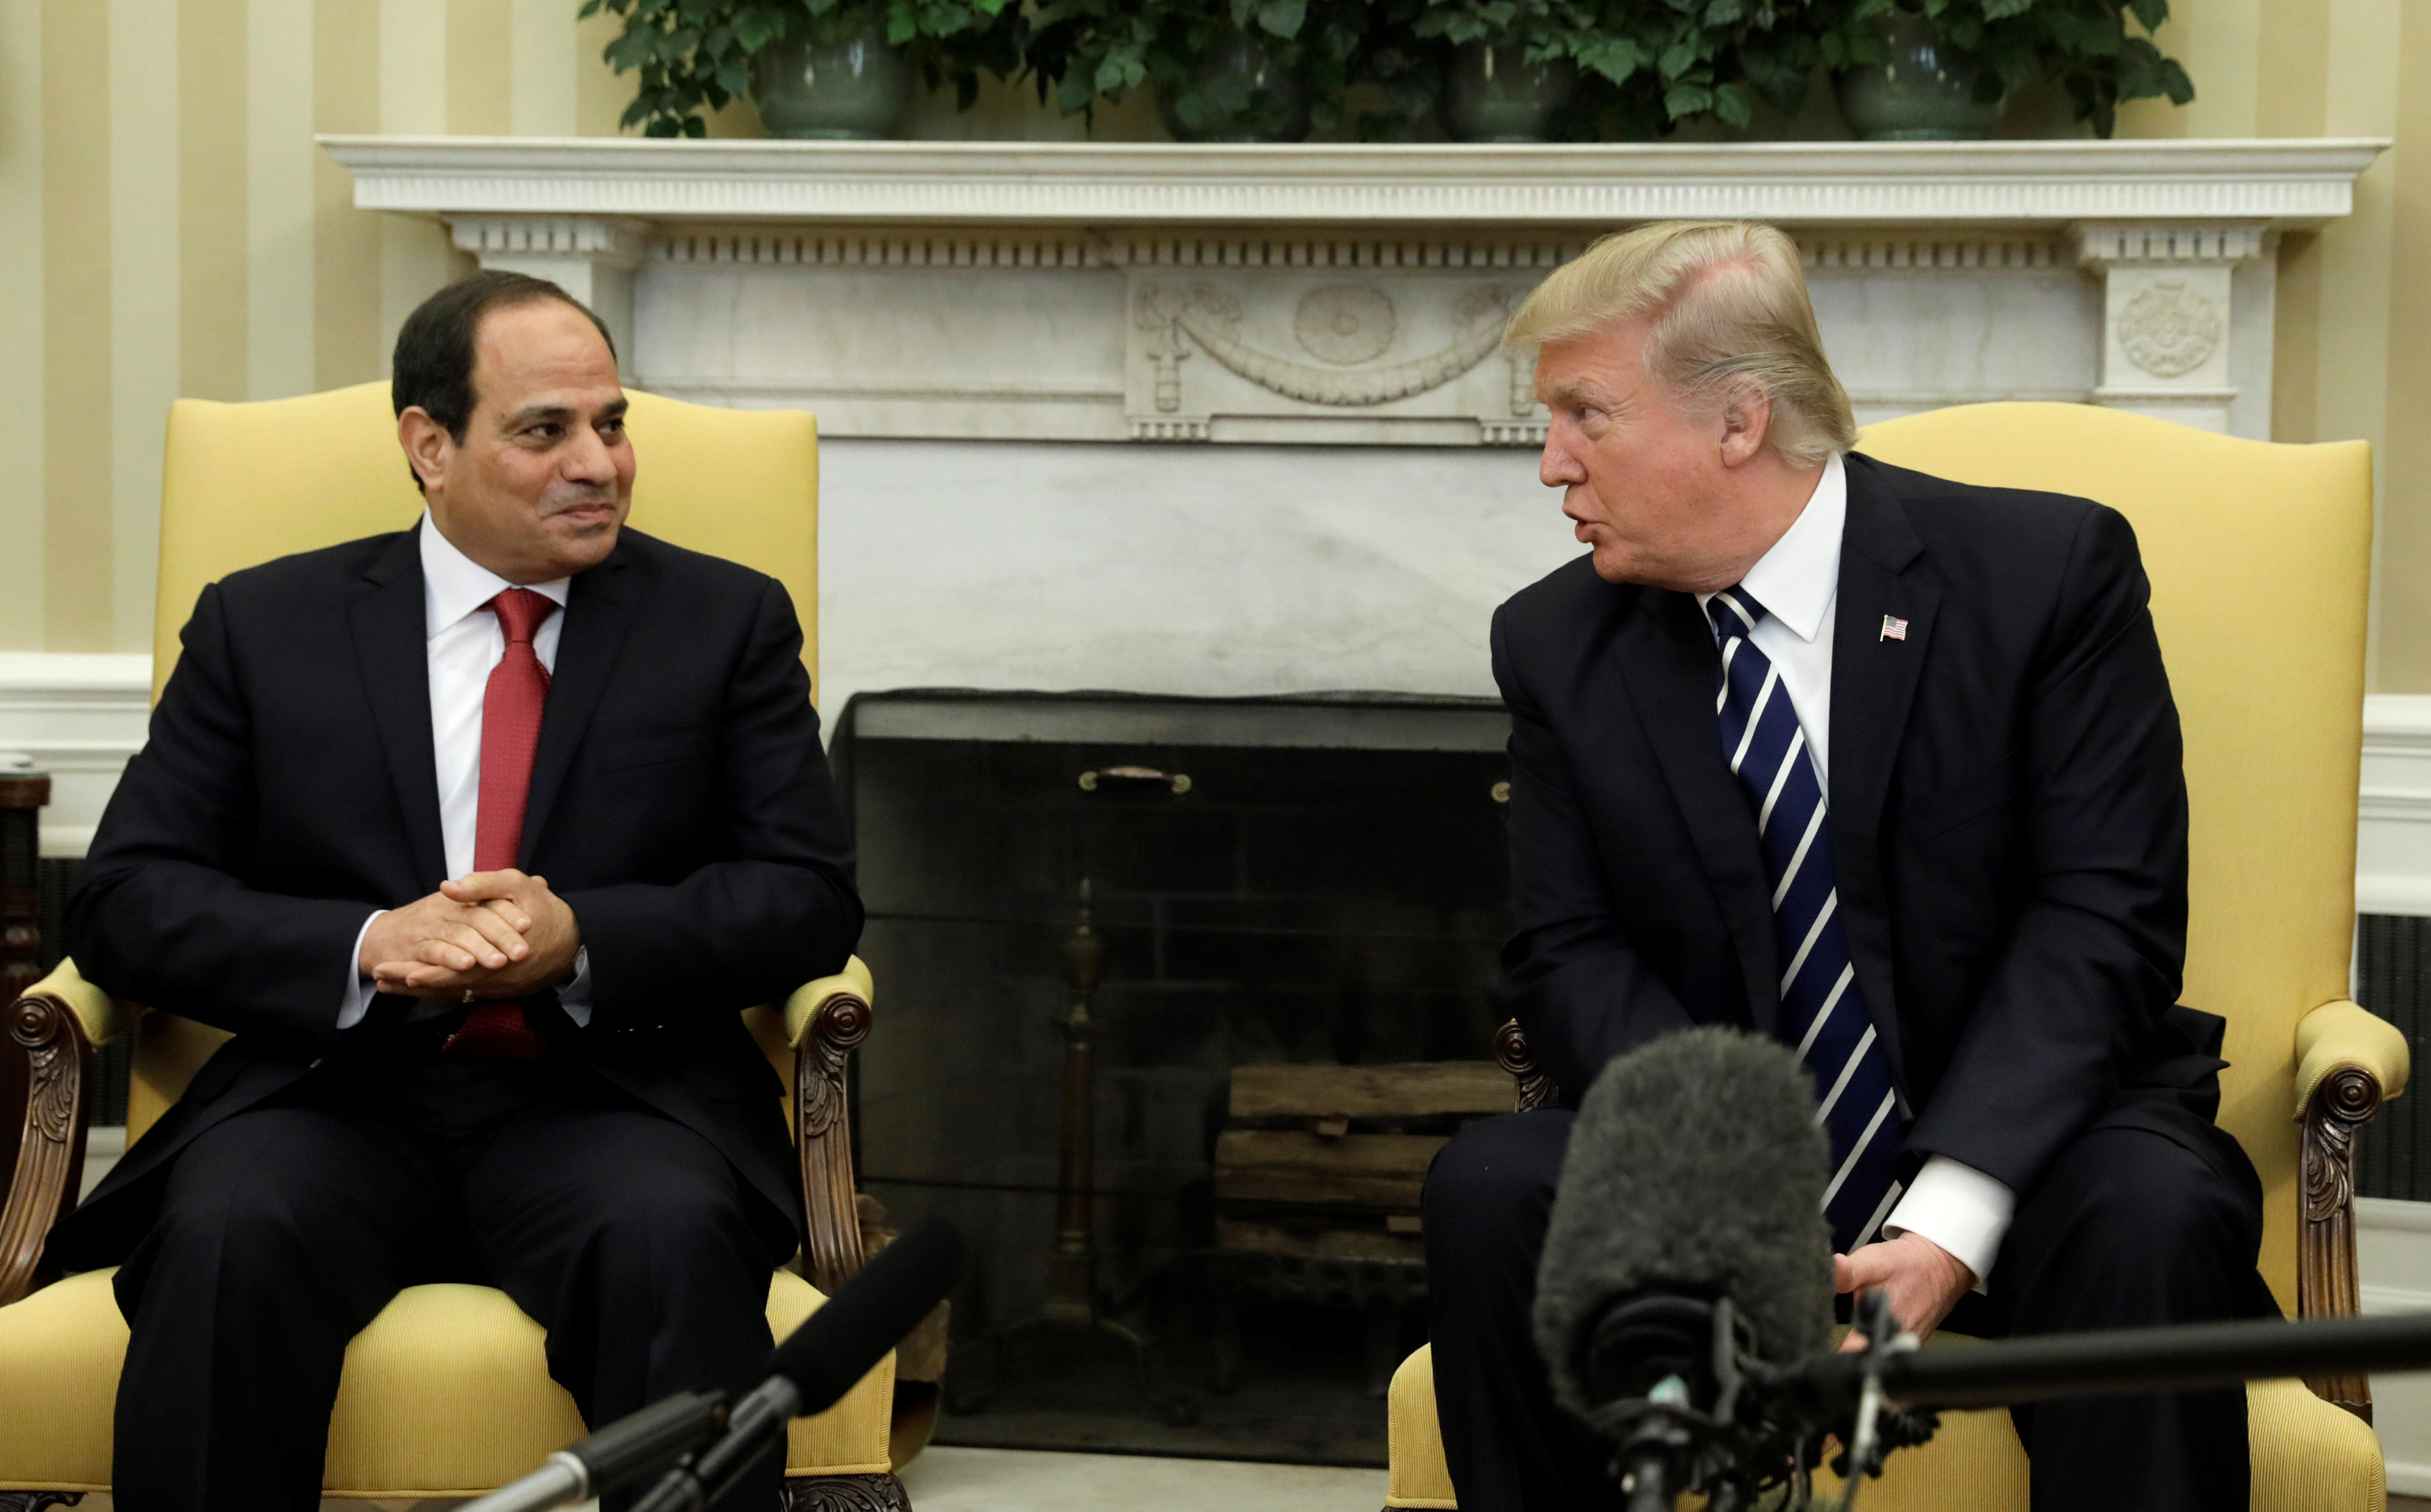 President Donald Trump meets Egyptian President Abdel Fattah al-Sisi in the Oval Office of the White House in Washington on April 3, 2017. (REUTERS/Kevin Lamarque)